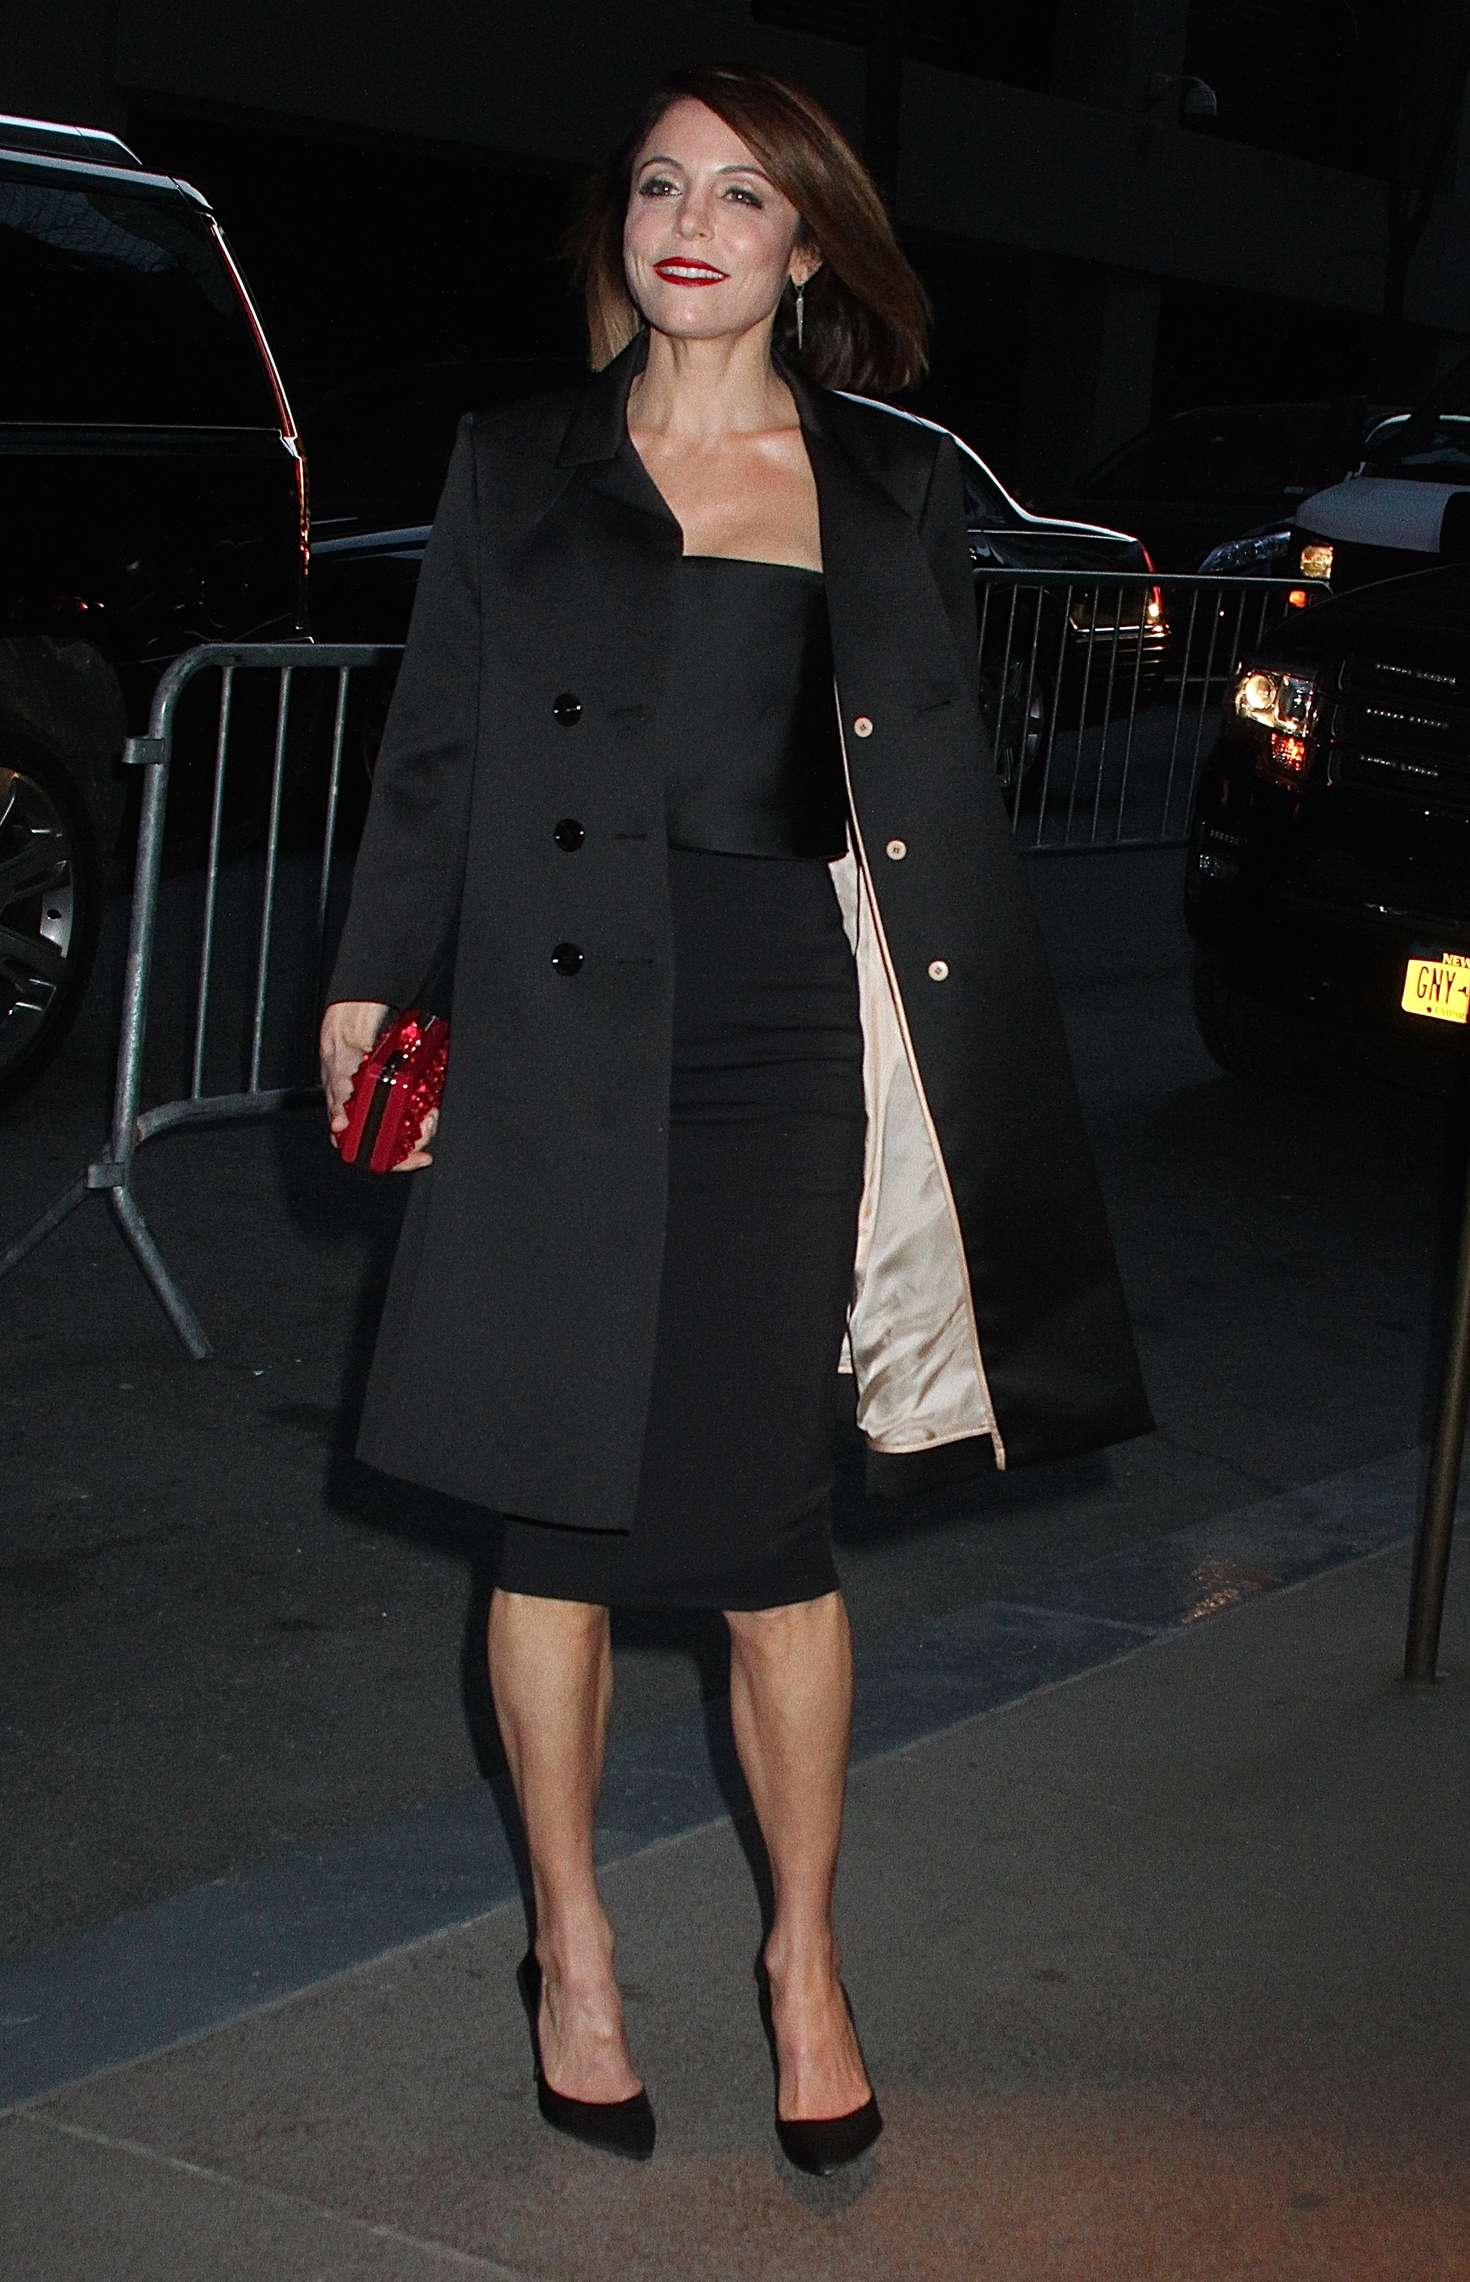 Bethenny Frankel Hollywood Reporters Most Powerful People in Media Event in New York